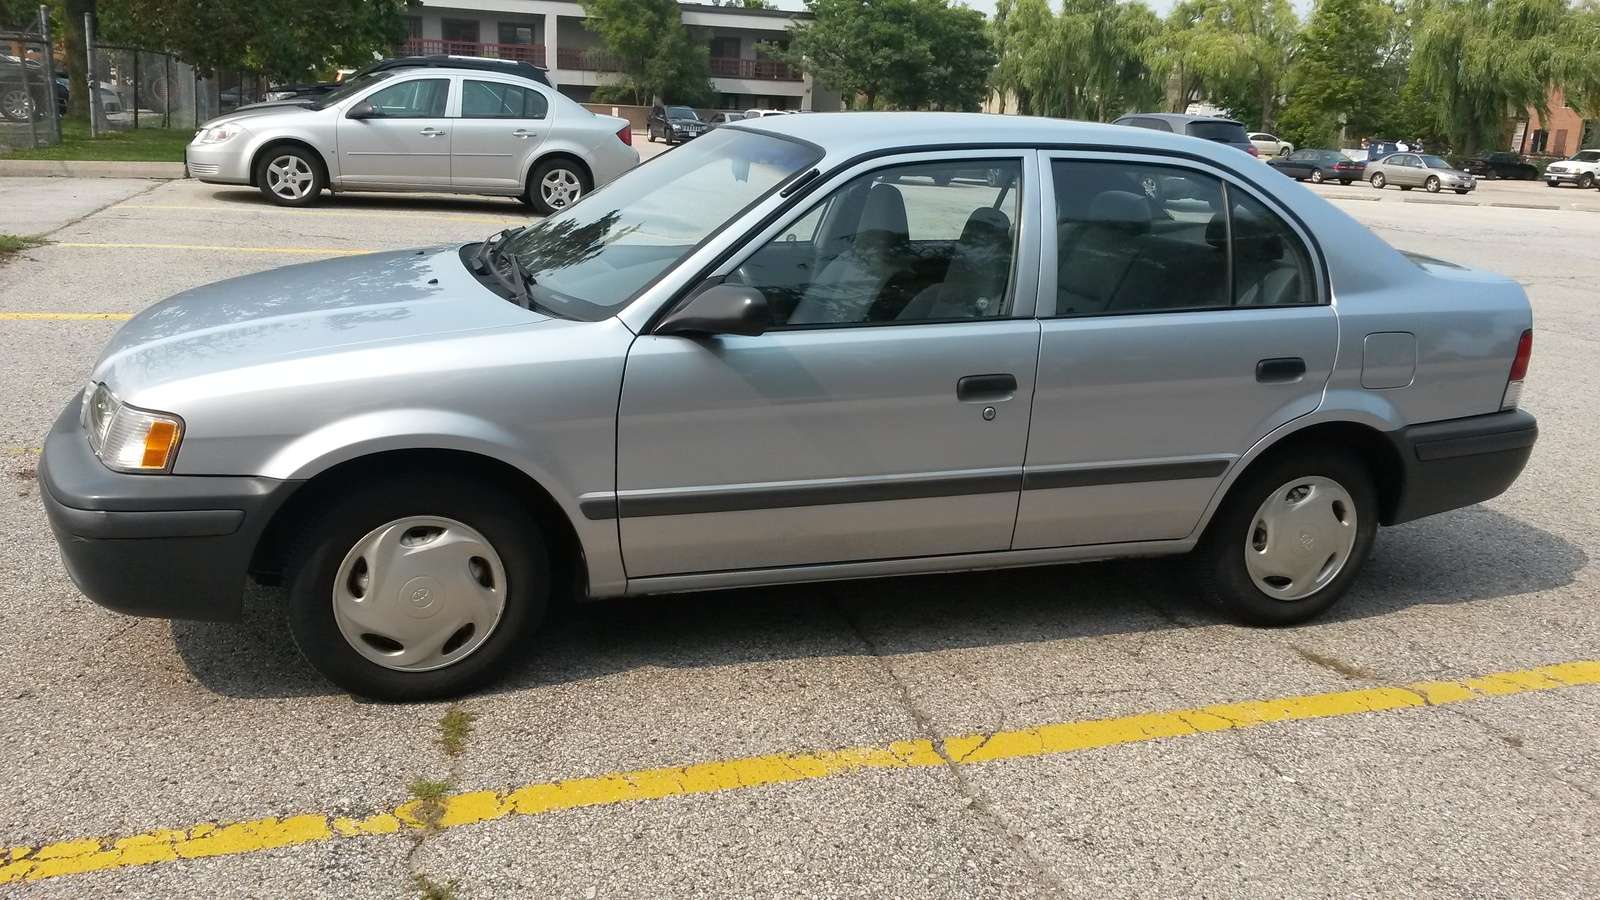 1998 Toyota Tercel - Overview